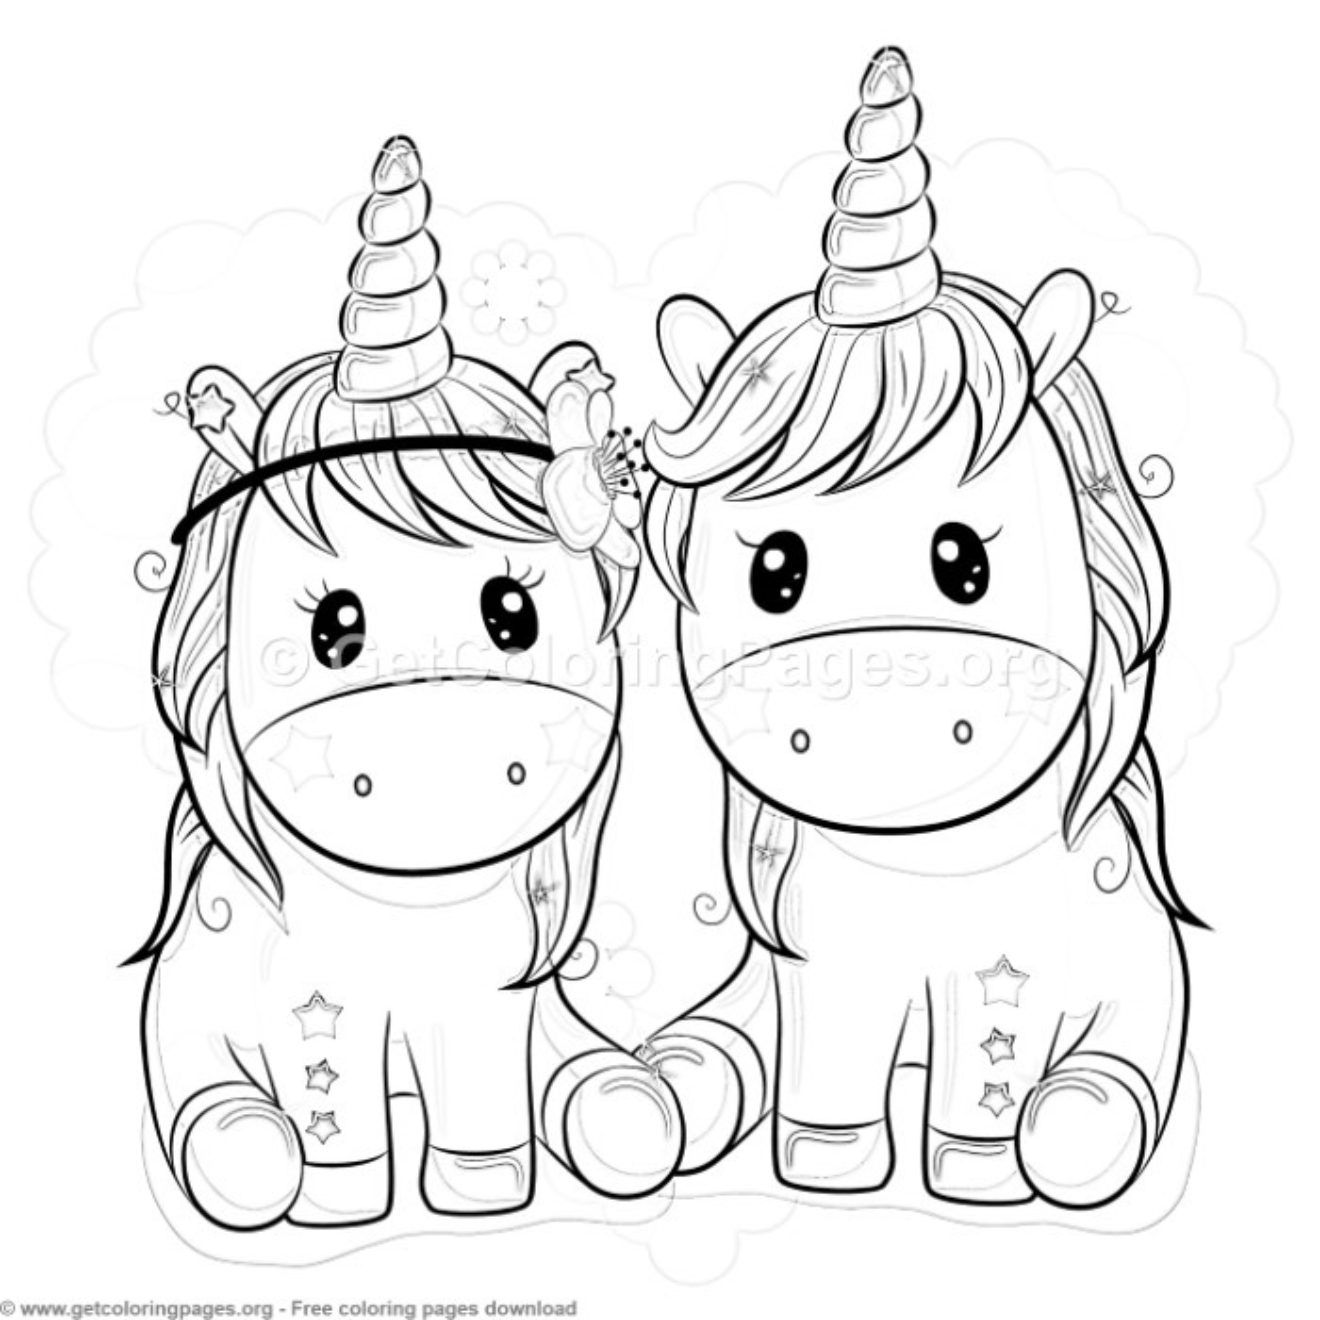 Voodoodles Lots Of Llamas Coloring Page Kids Fun And Stuff